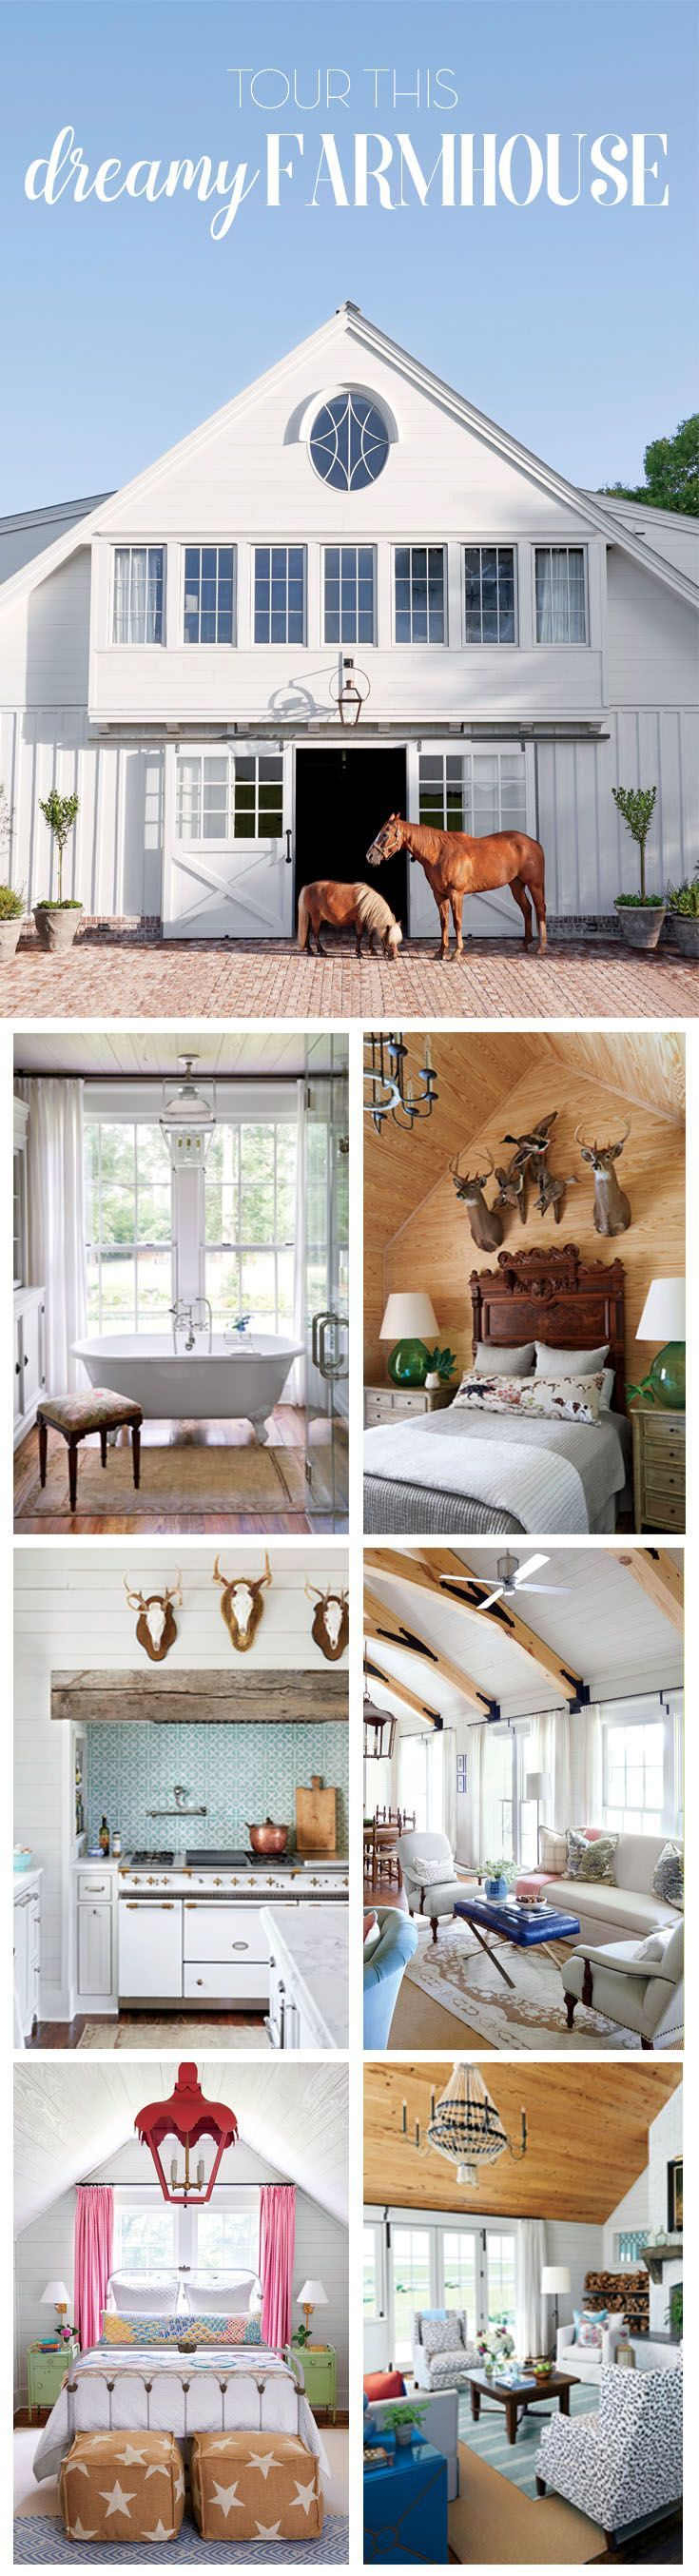 After spotting her dream property, this homeowner worked to turn the once-ramshackle cottage into a family farmhouse.